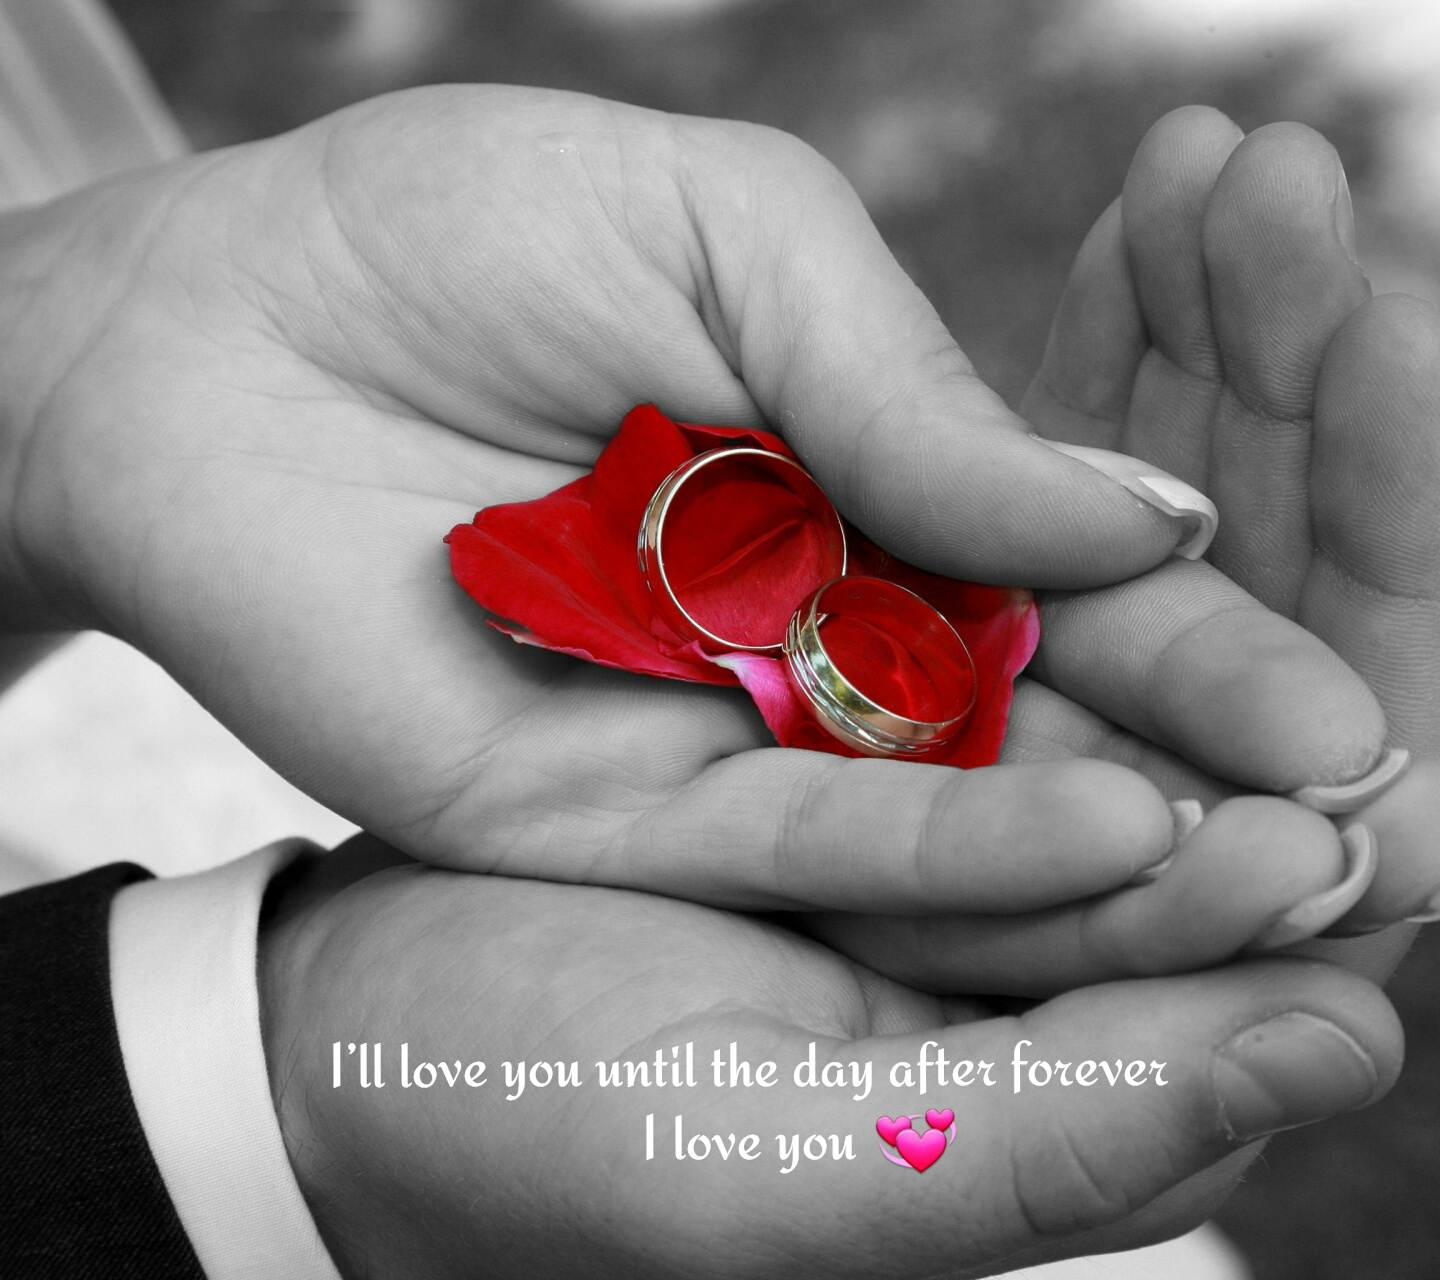 Download Untill The Day Love Forever Image Wallpaper For Mobile Cell Phone